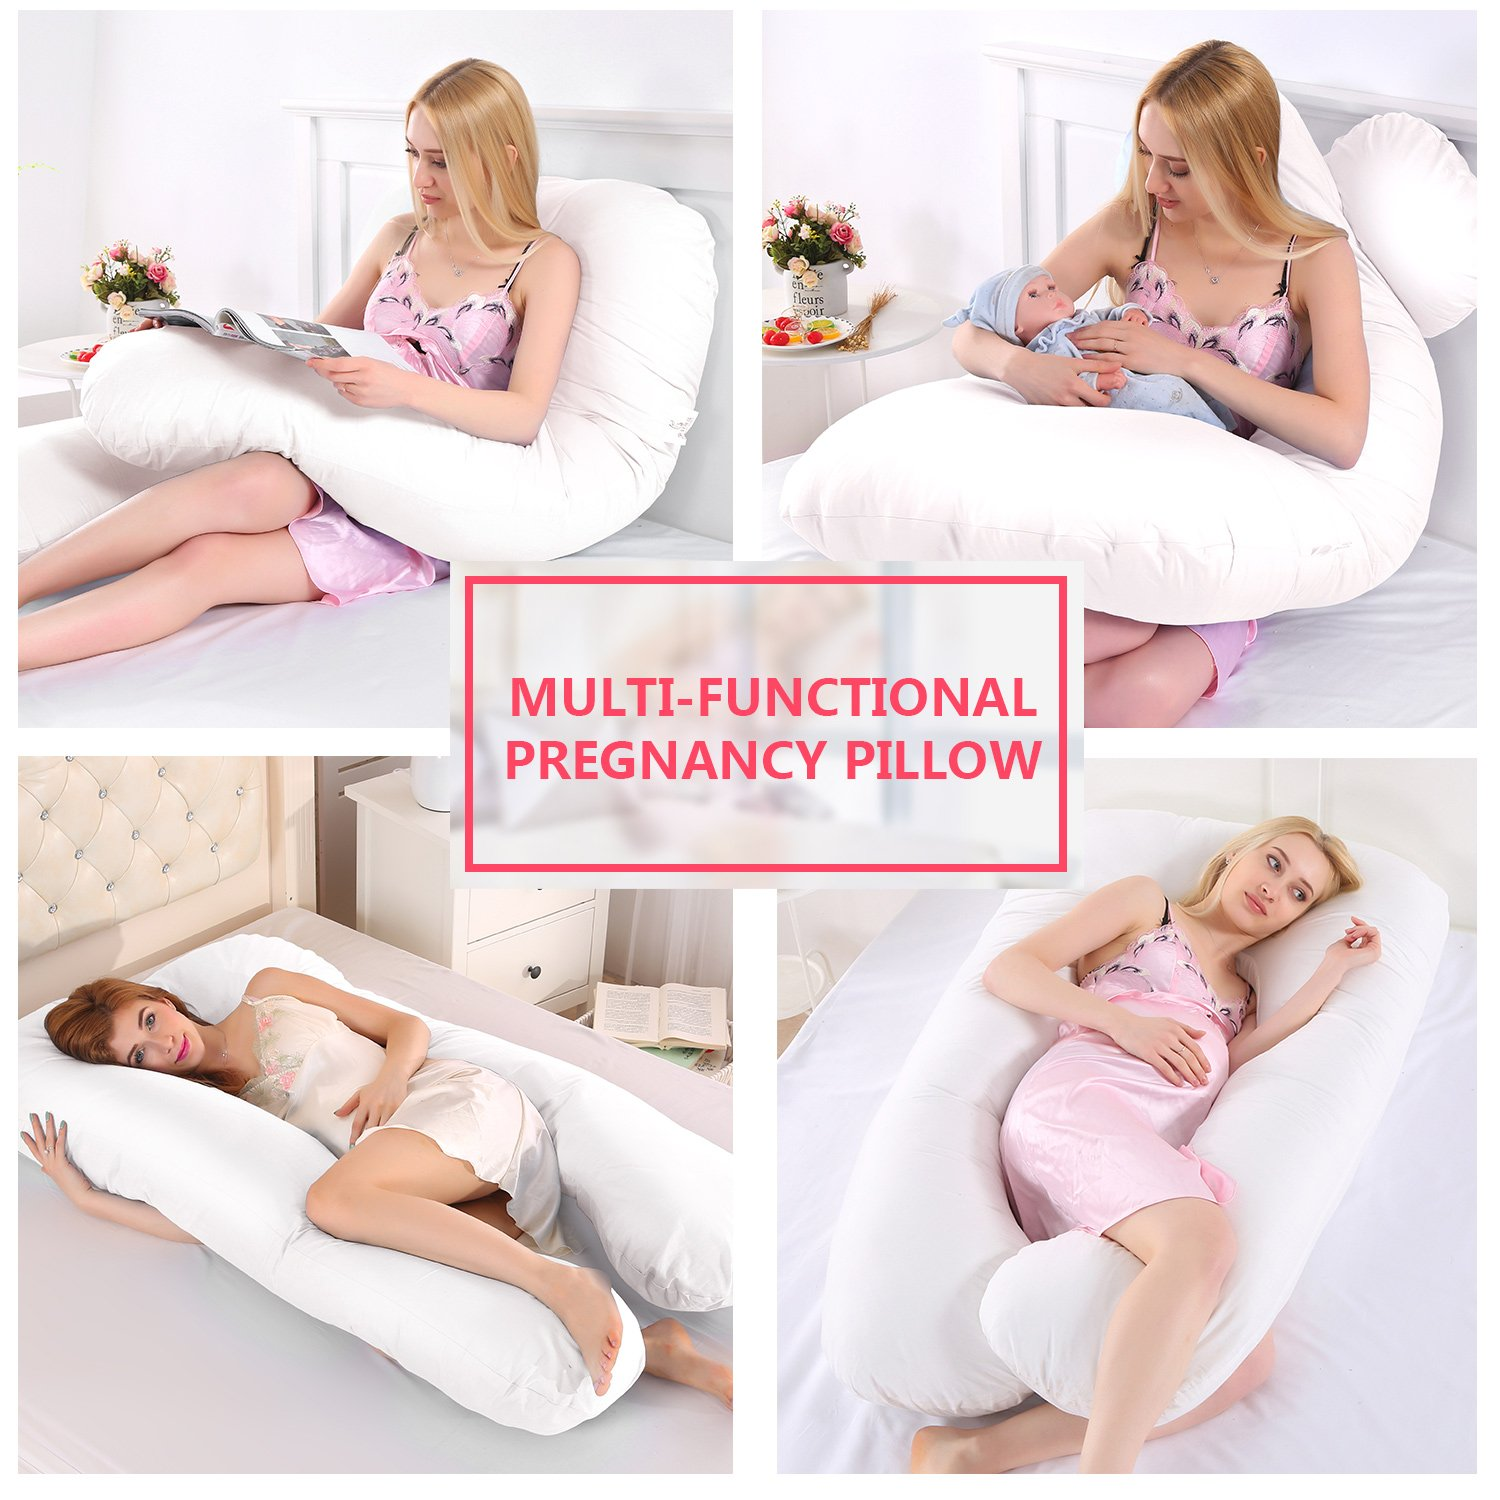 Pregnant Full Body Pillow U Shaped Maternity Pillow Nursing Cushion with Washable Cover White Ylovetoys Pregnancy Pillow